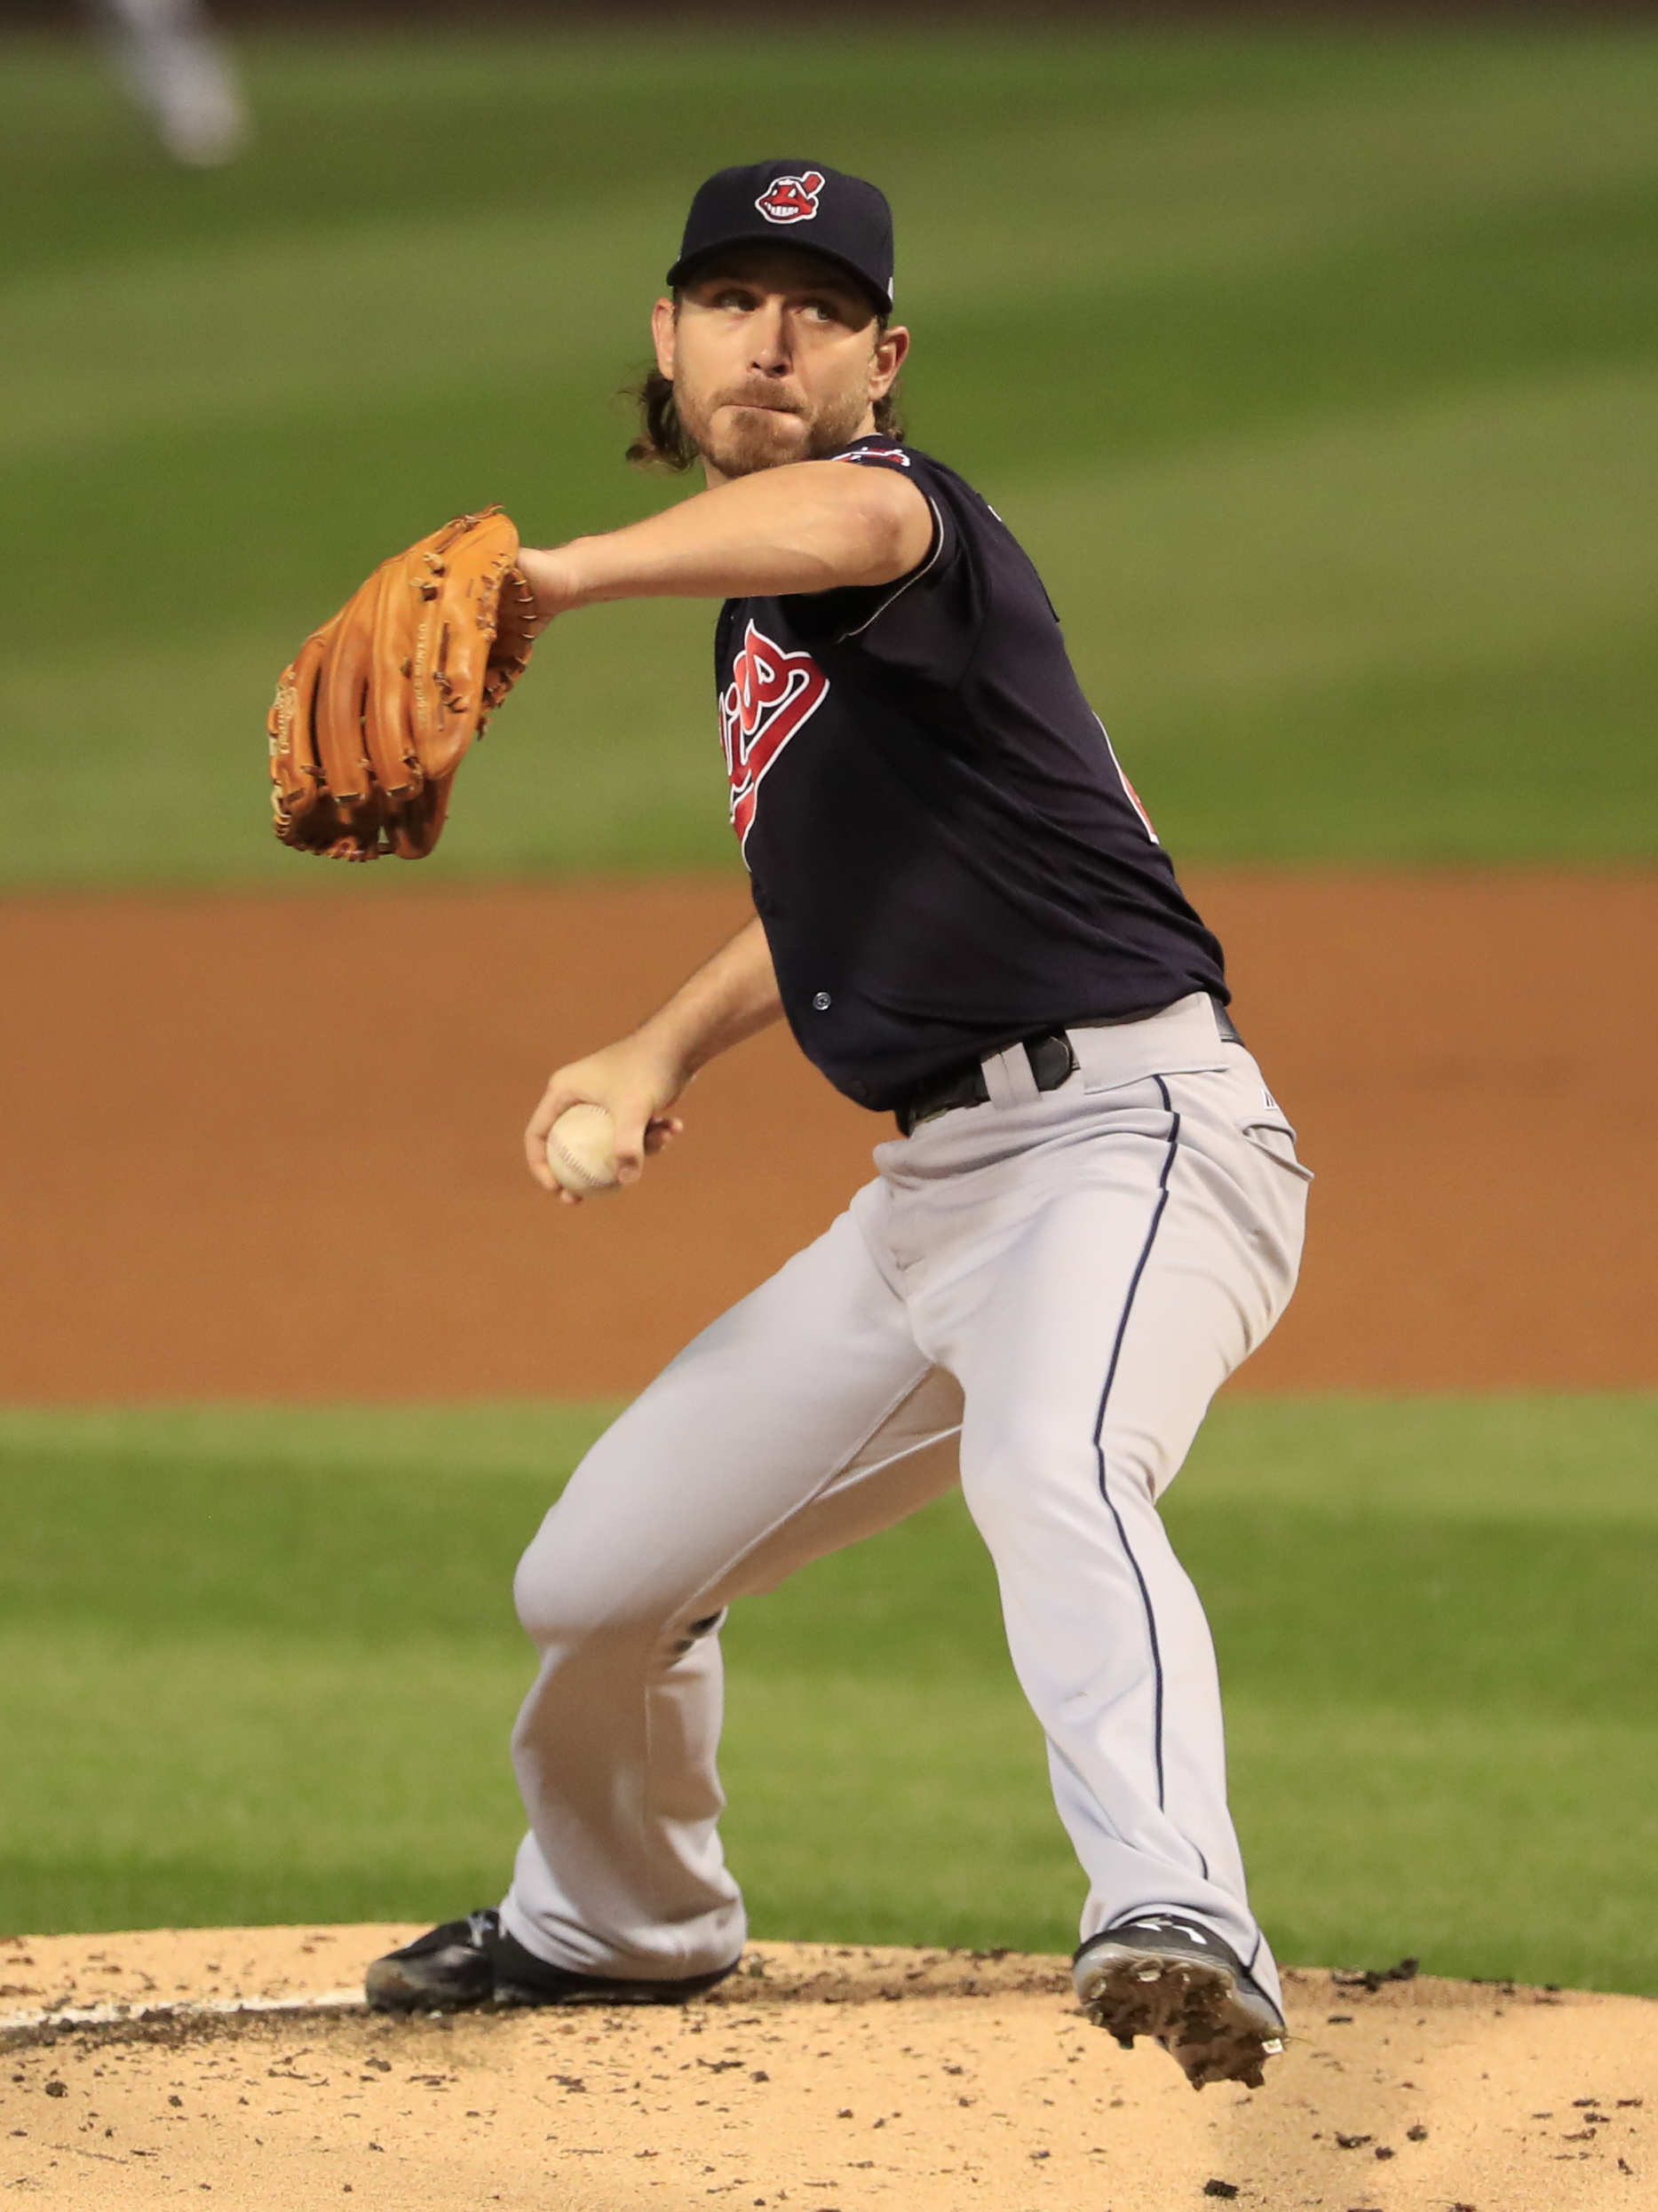 Cleveland Indians starting pitcher Josh Tomlin throws during the first inning of Game 3 of the Major League Baseball World Series against the Chicago Cubs Friday, Oct. 28, 2016, in Chicago. (AP Photo/Tannen Maury, Pool)